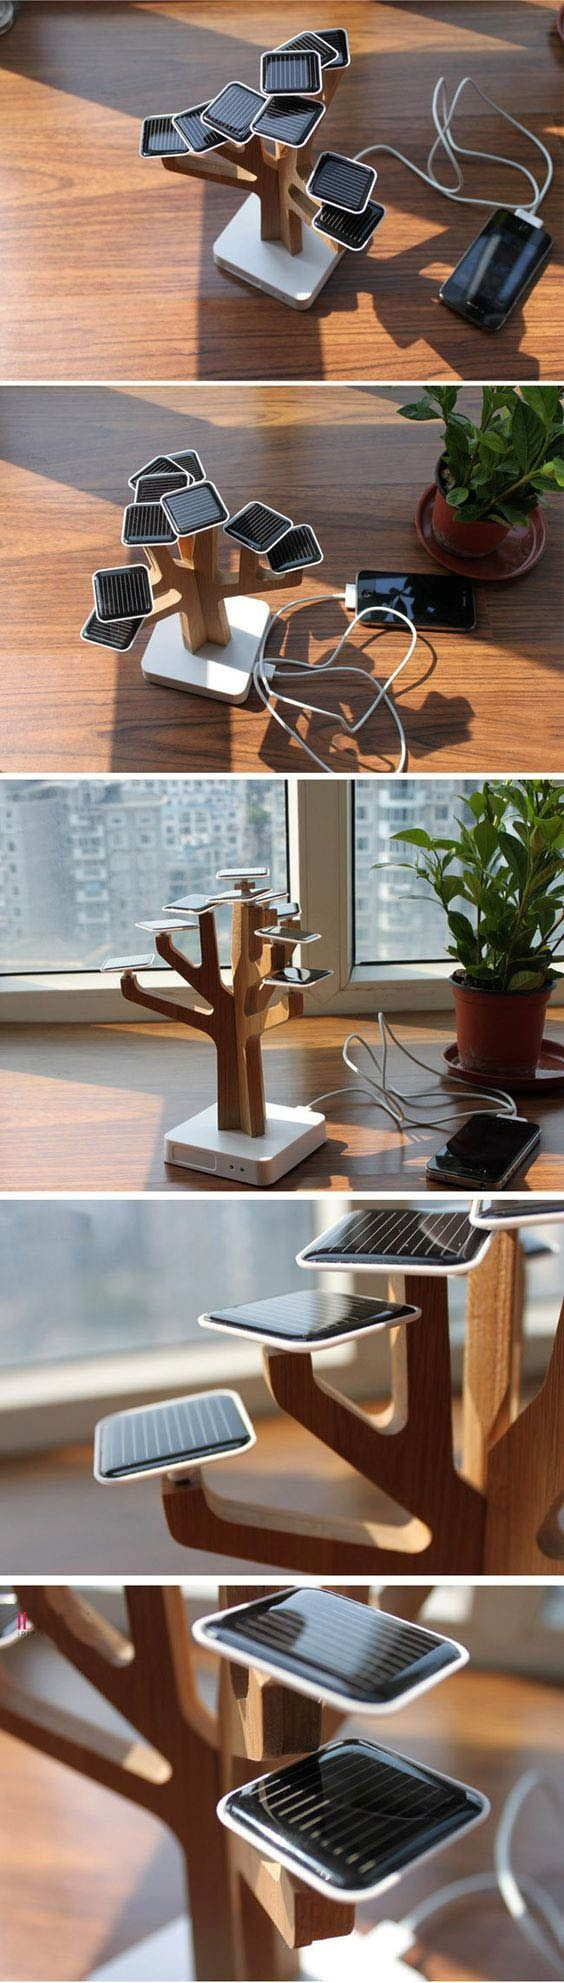 Solar powered tree to charge cell phones. Fits in as a décor piece as well.